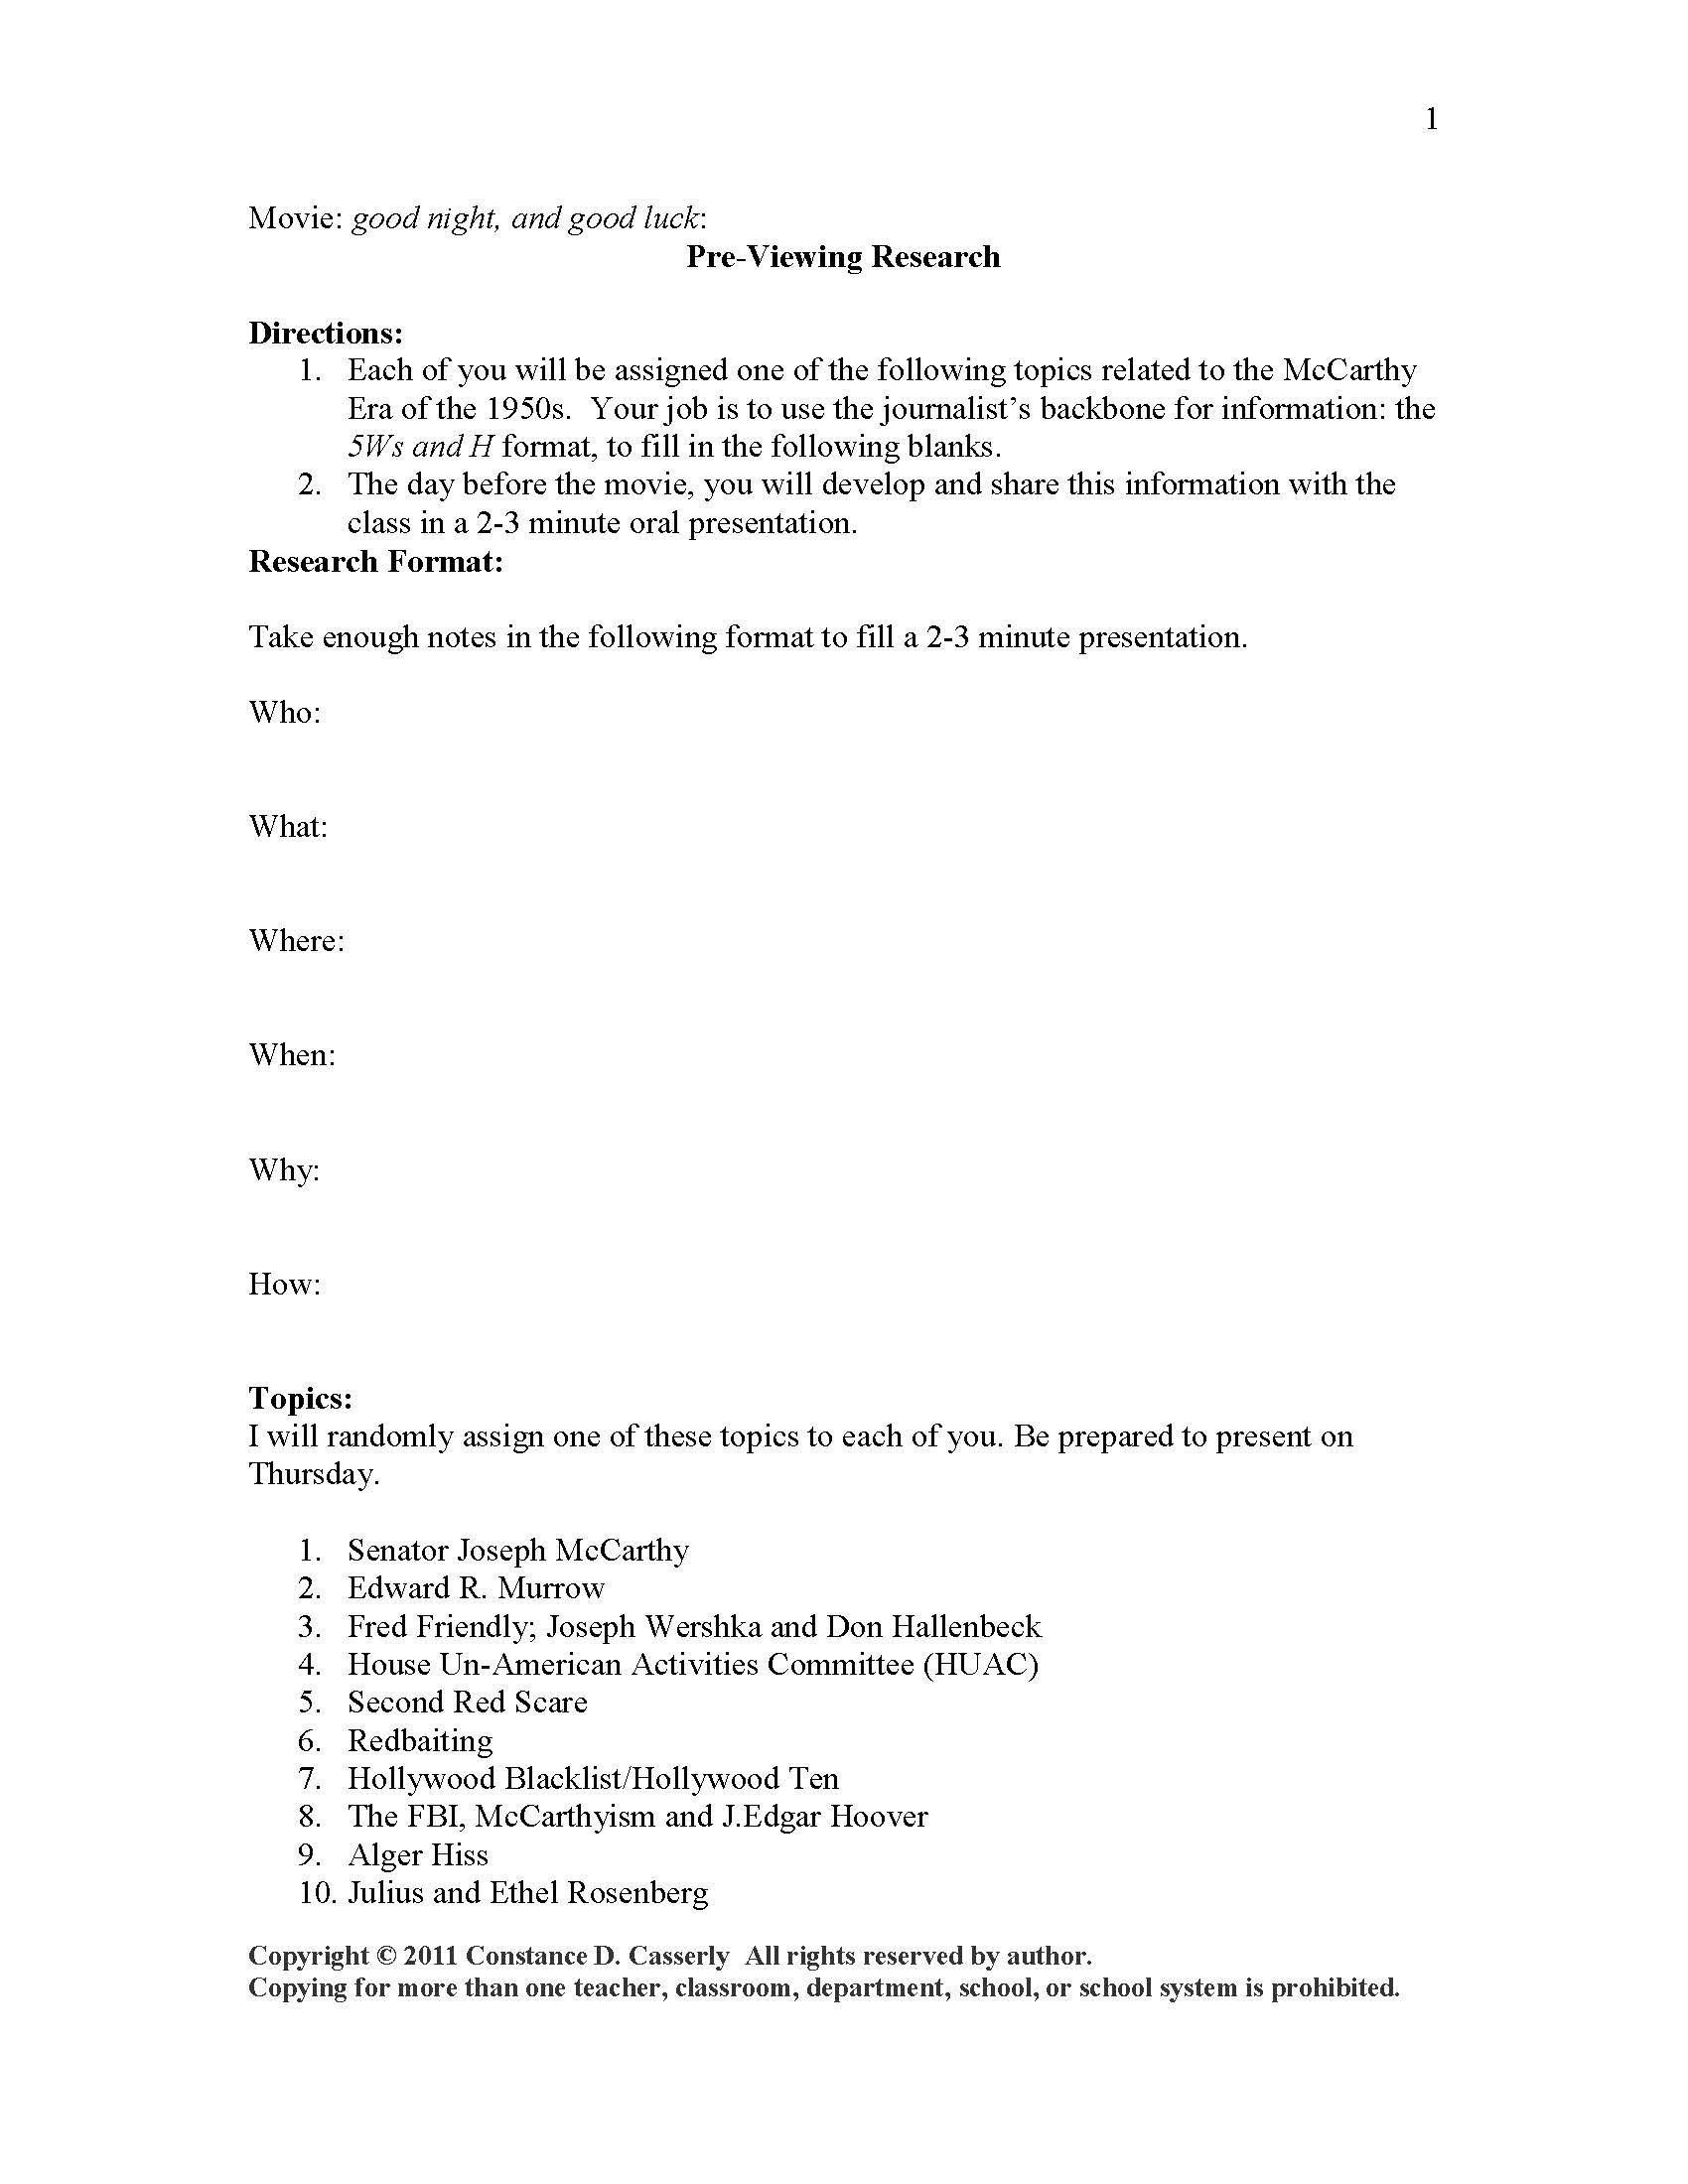 The Red Scare Worksheet Answers Worksheet For The Movie